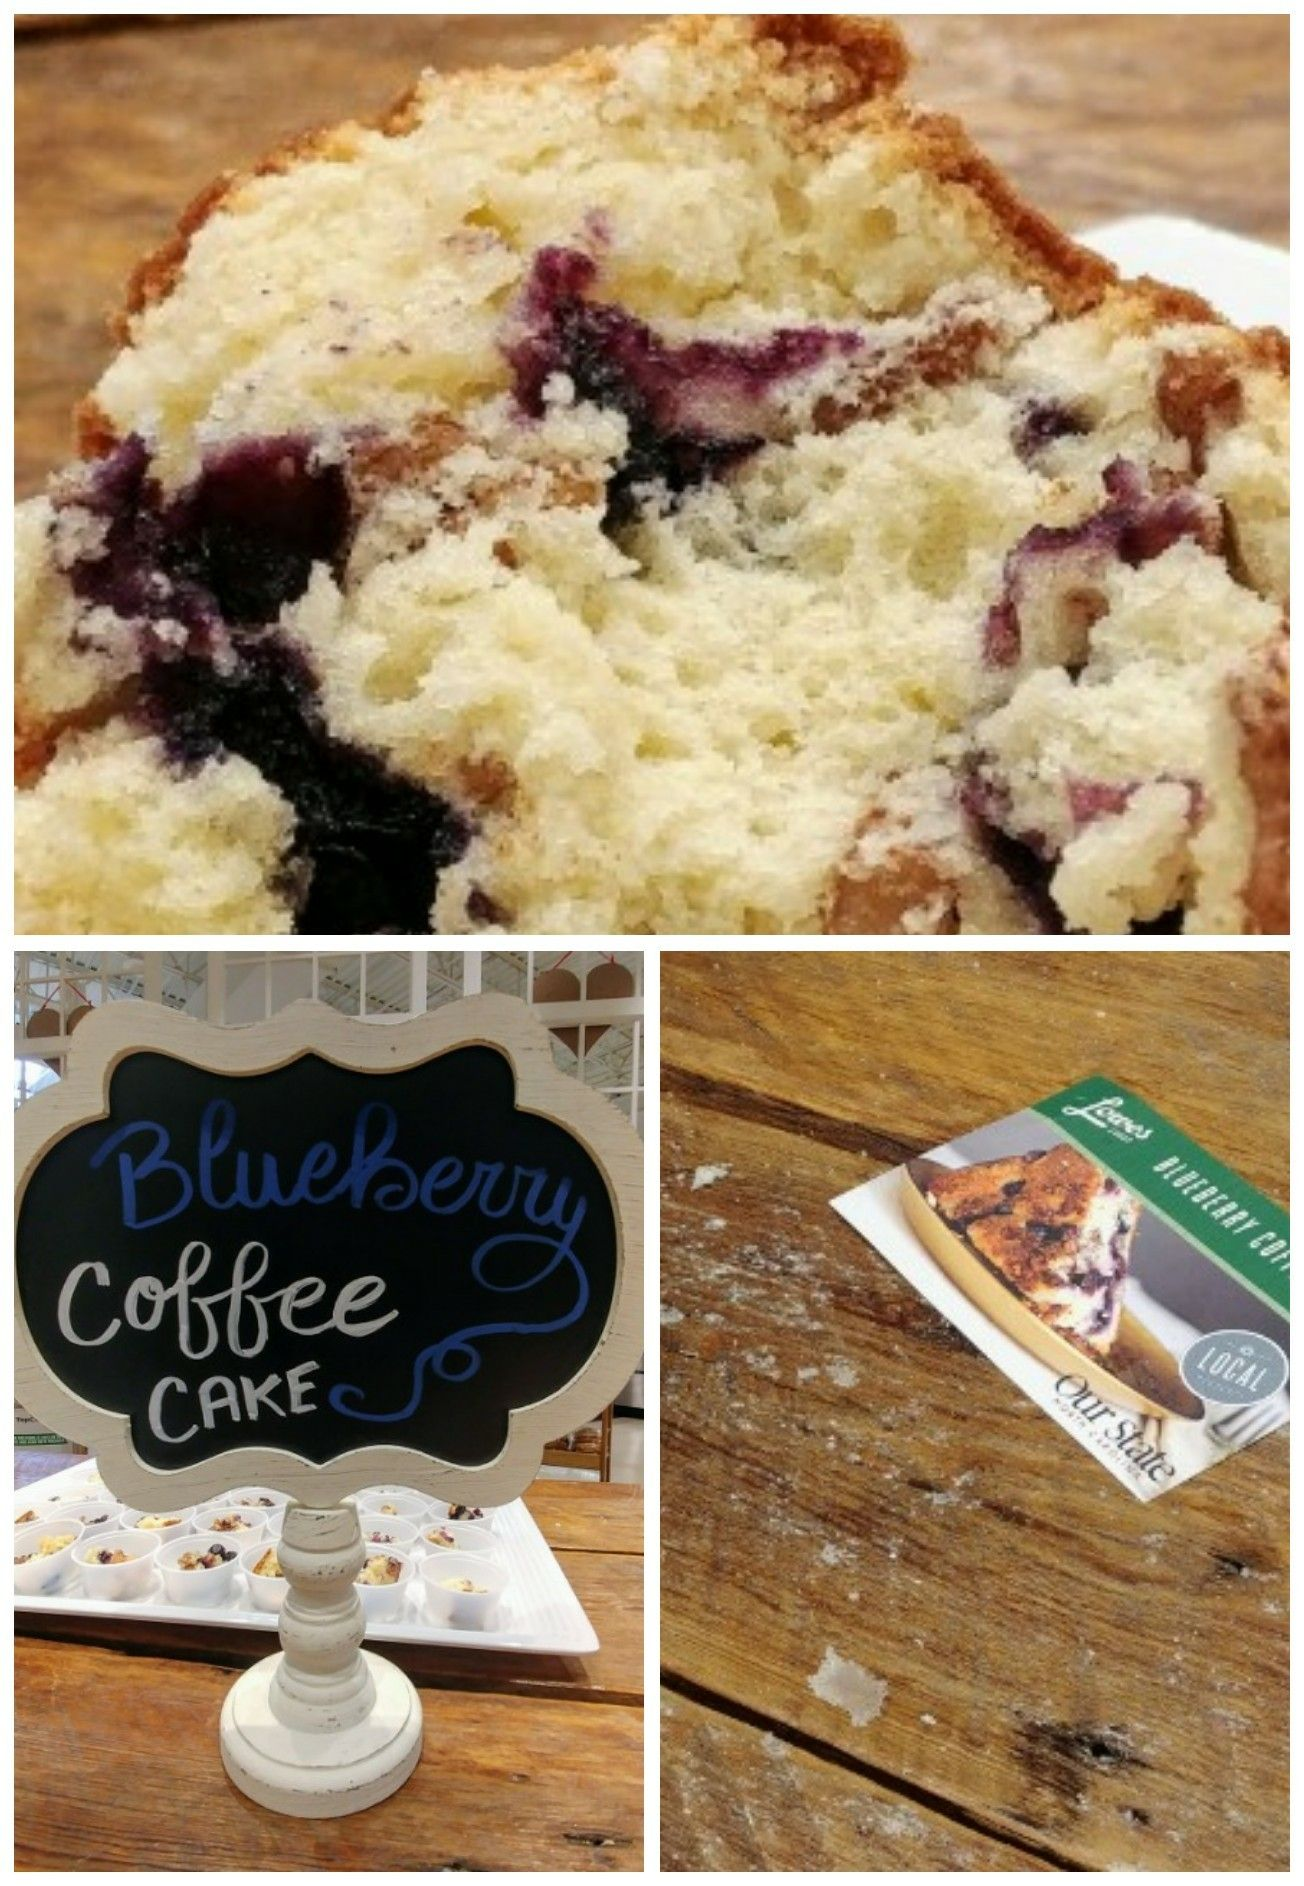 A messy table makes an amazing blueberry coffee cake